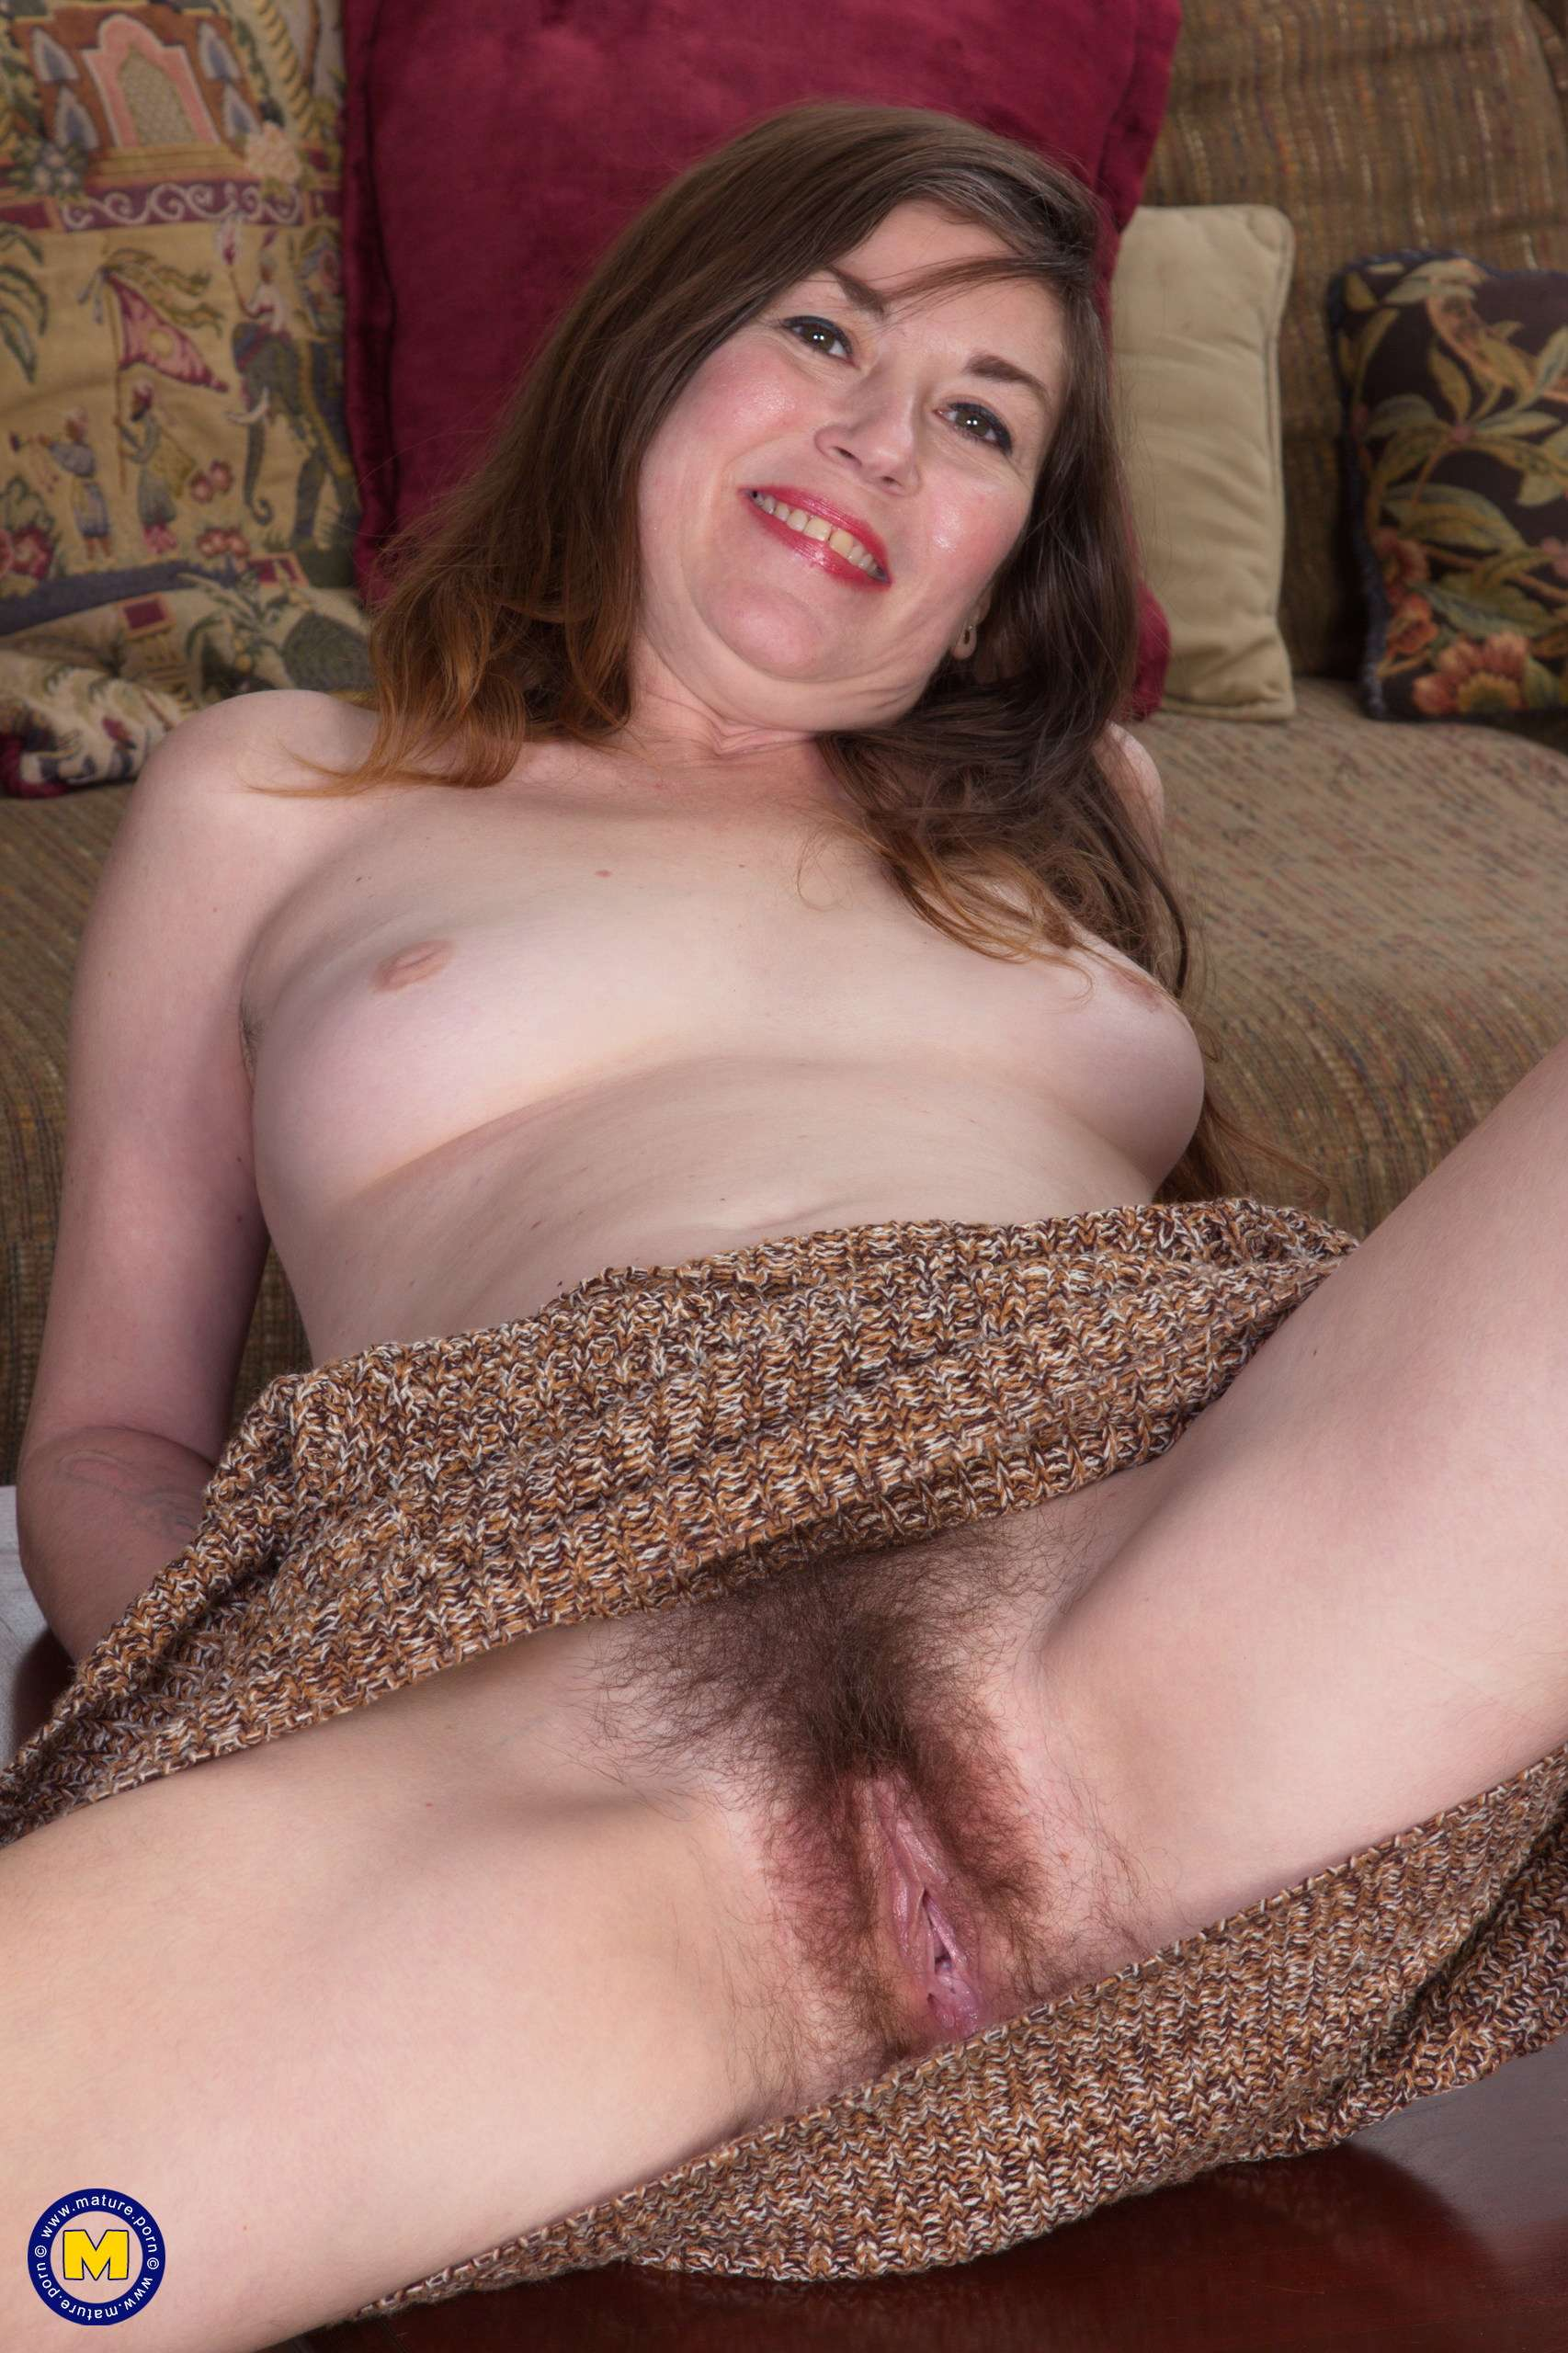 Hairy American mature slut playing with herself